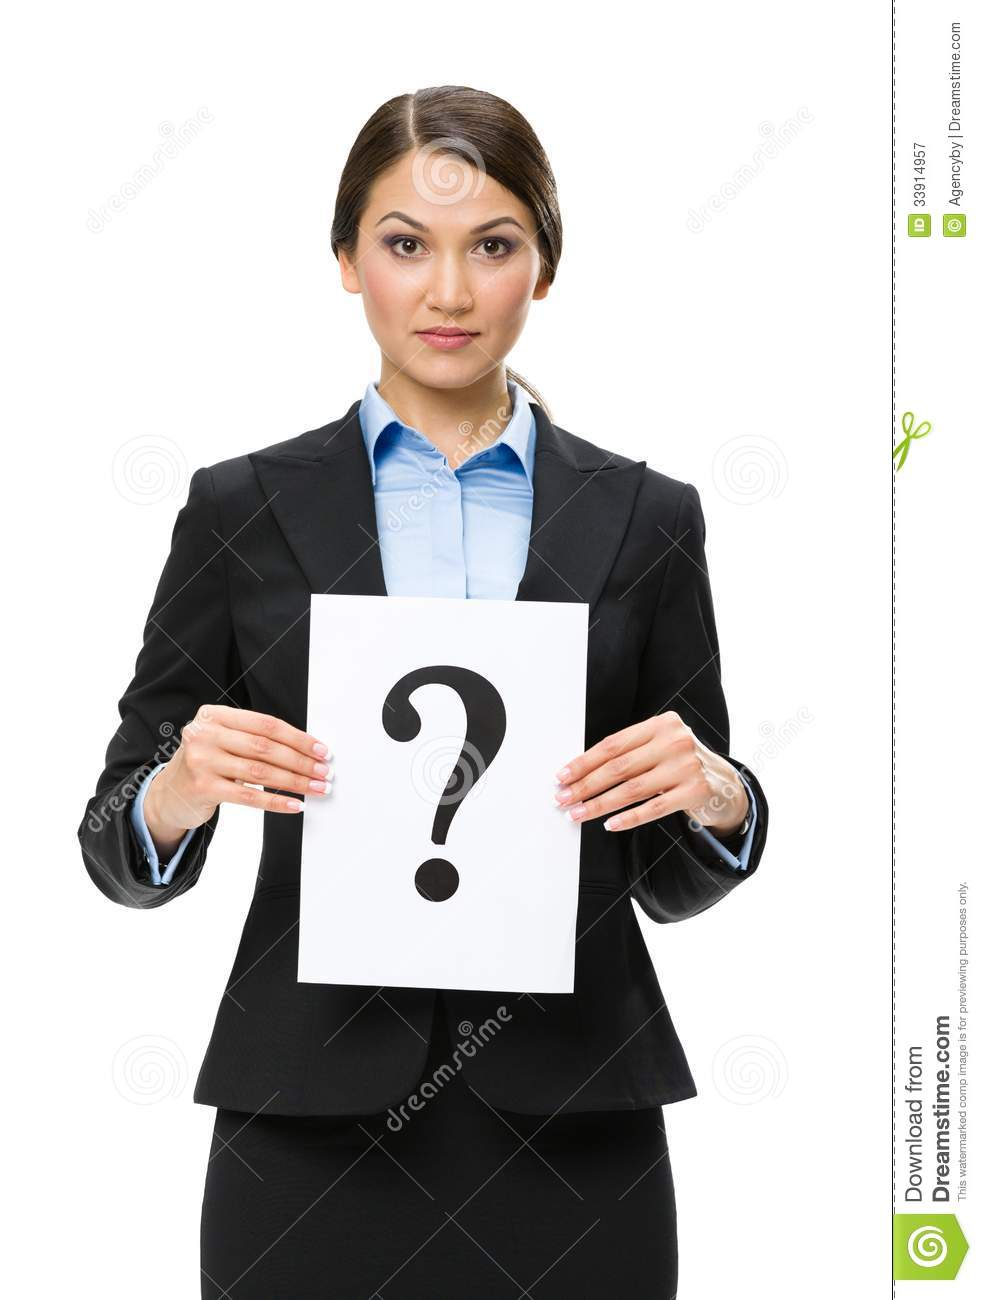 Half-length portrait of businesswoman with question mark